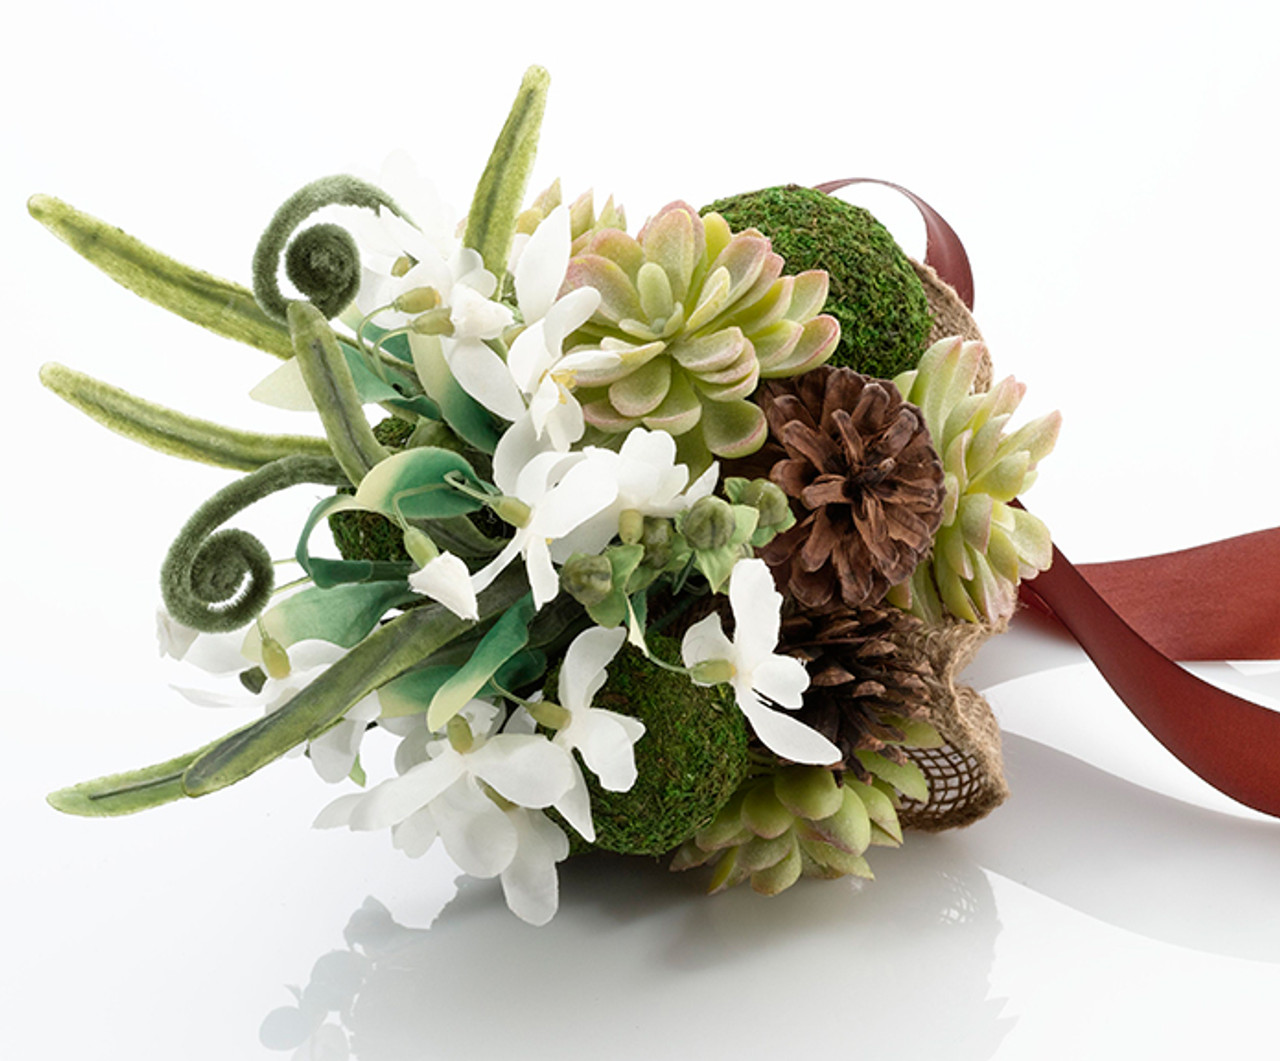 Stunning Moss And Succulent Bouquet For Bride Or Bridesmaids Unique Gifts By Lucy